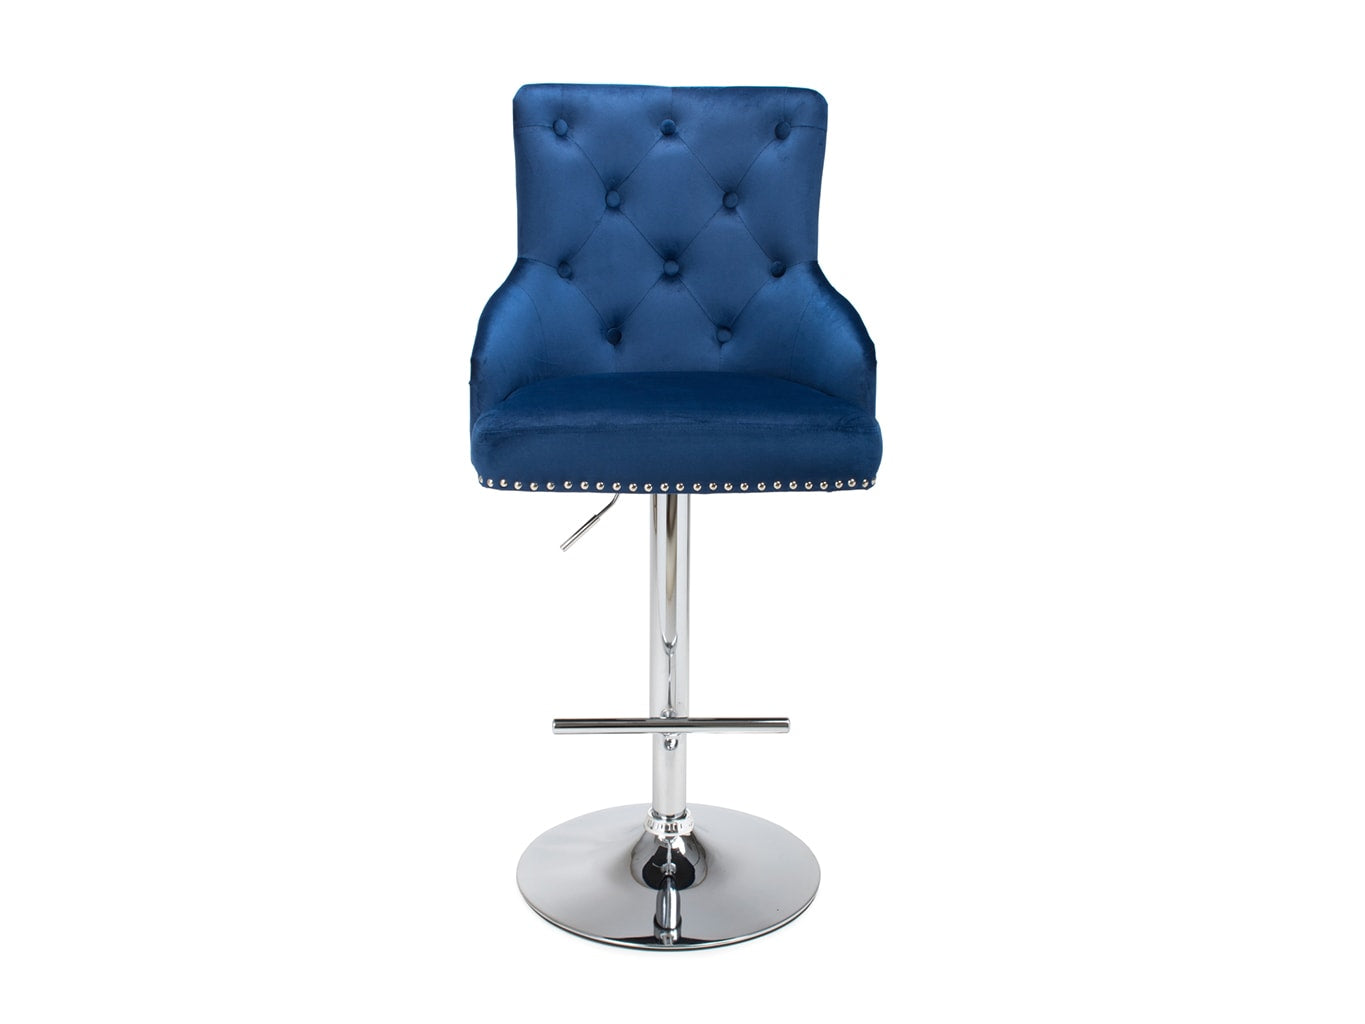 Bar stool in blue brushed velvet fabric